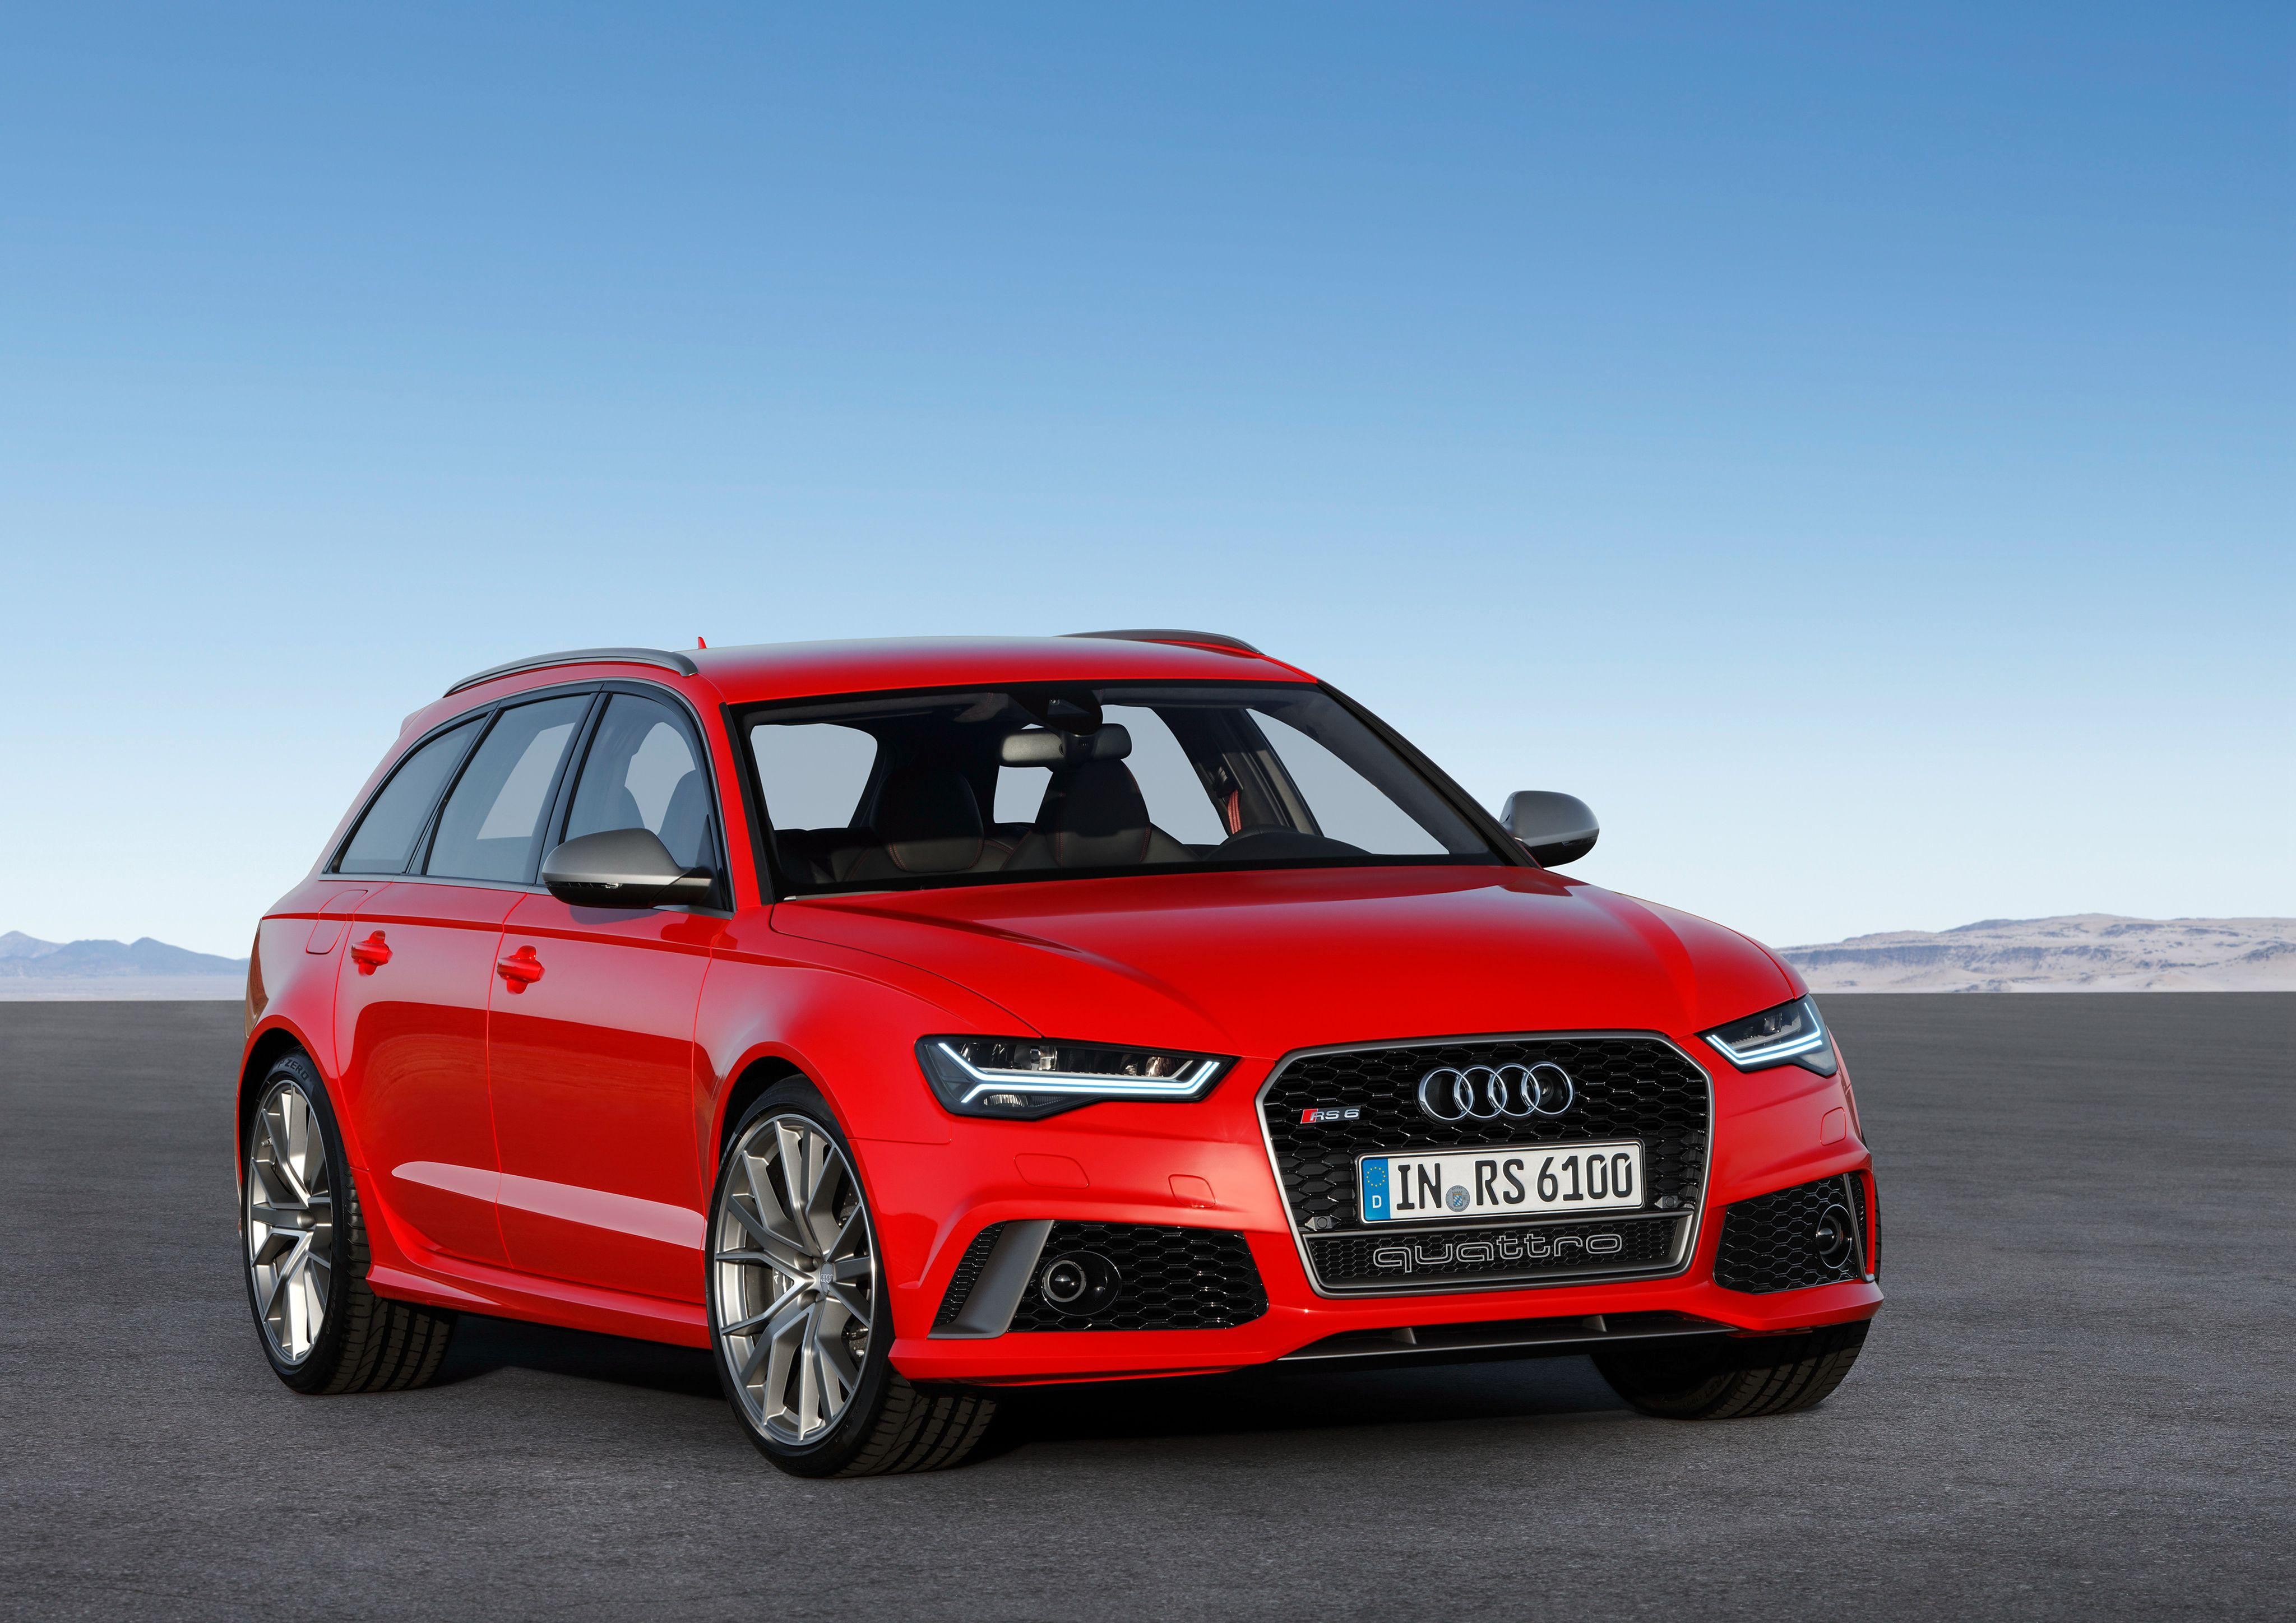 37 Audi RS6 HD Wallpapers | Backgrounds - Wallpaper Abyss